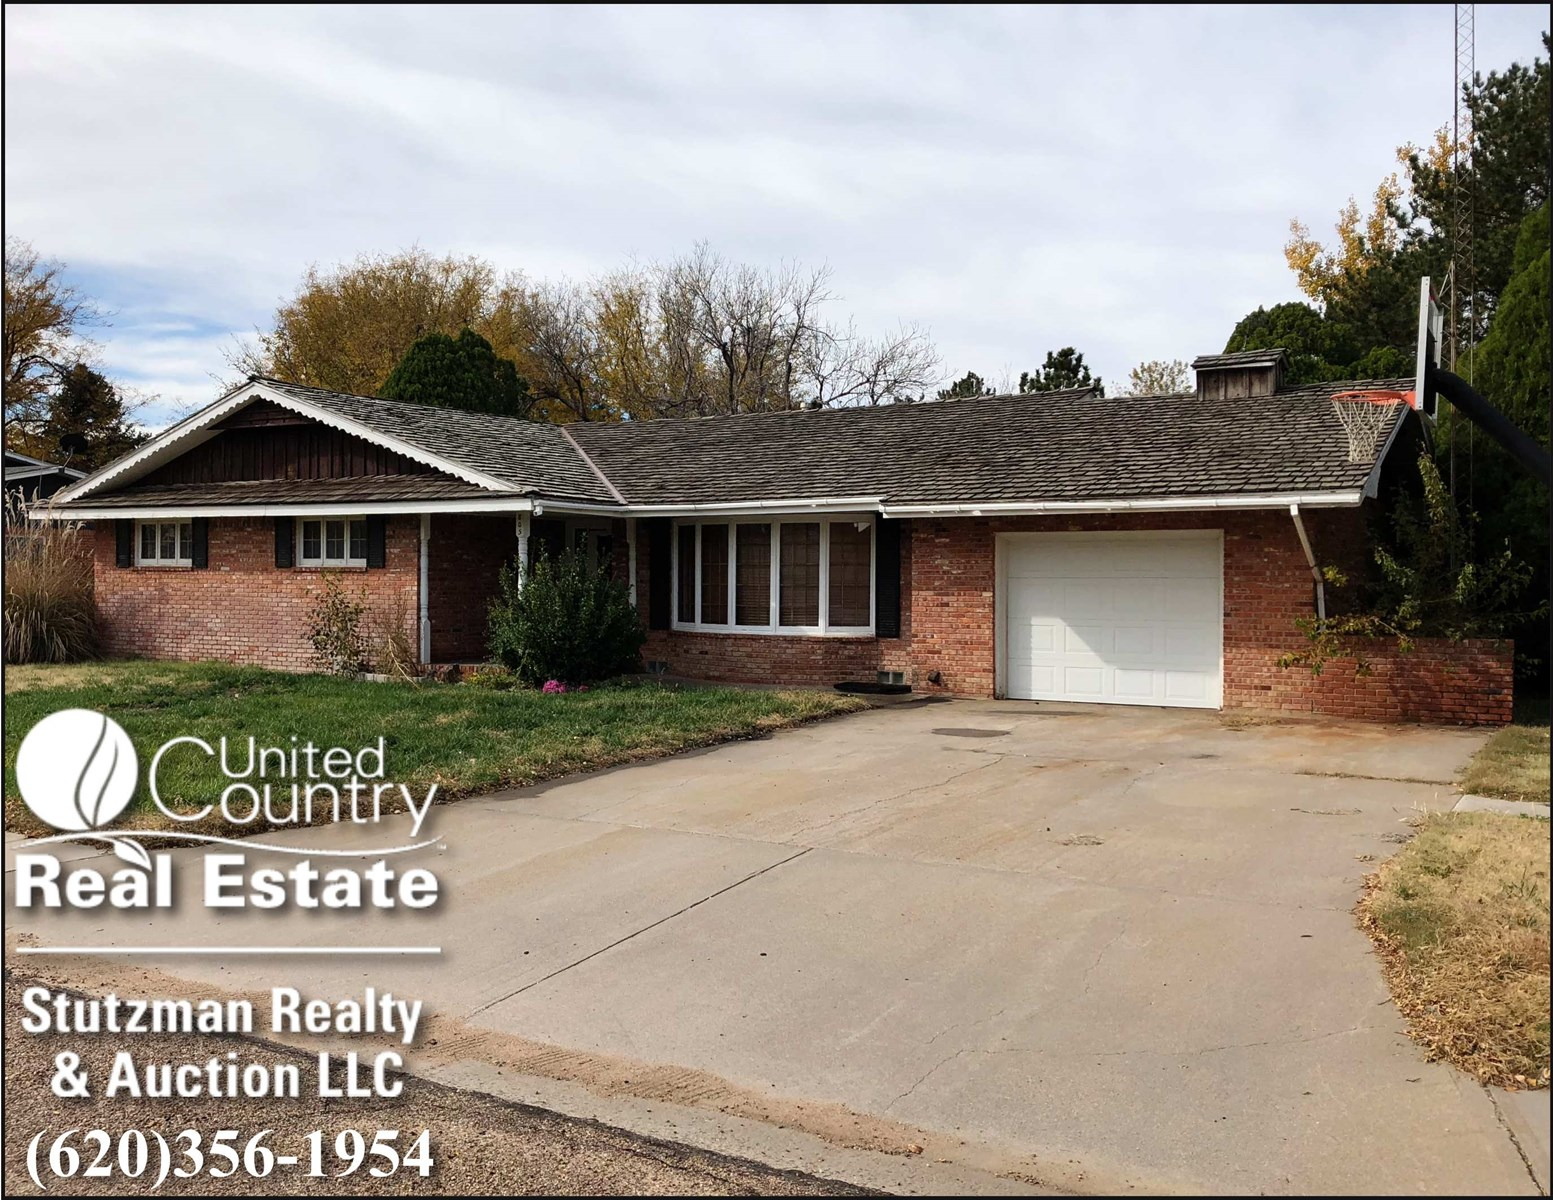 CHARMING BRICK HOME FOR SALE IN ULYSSES, KANSAS